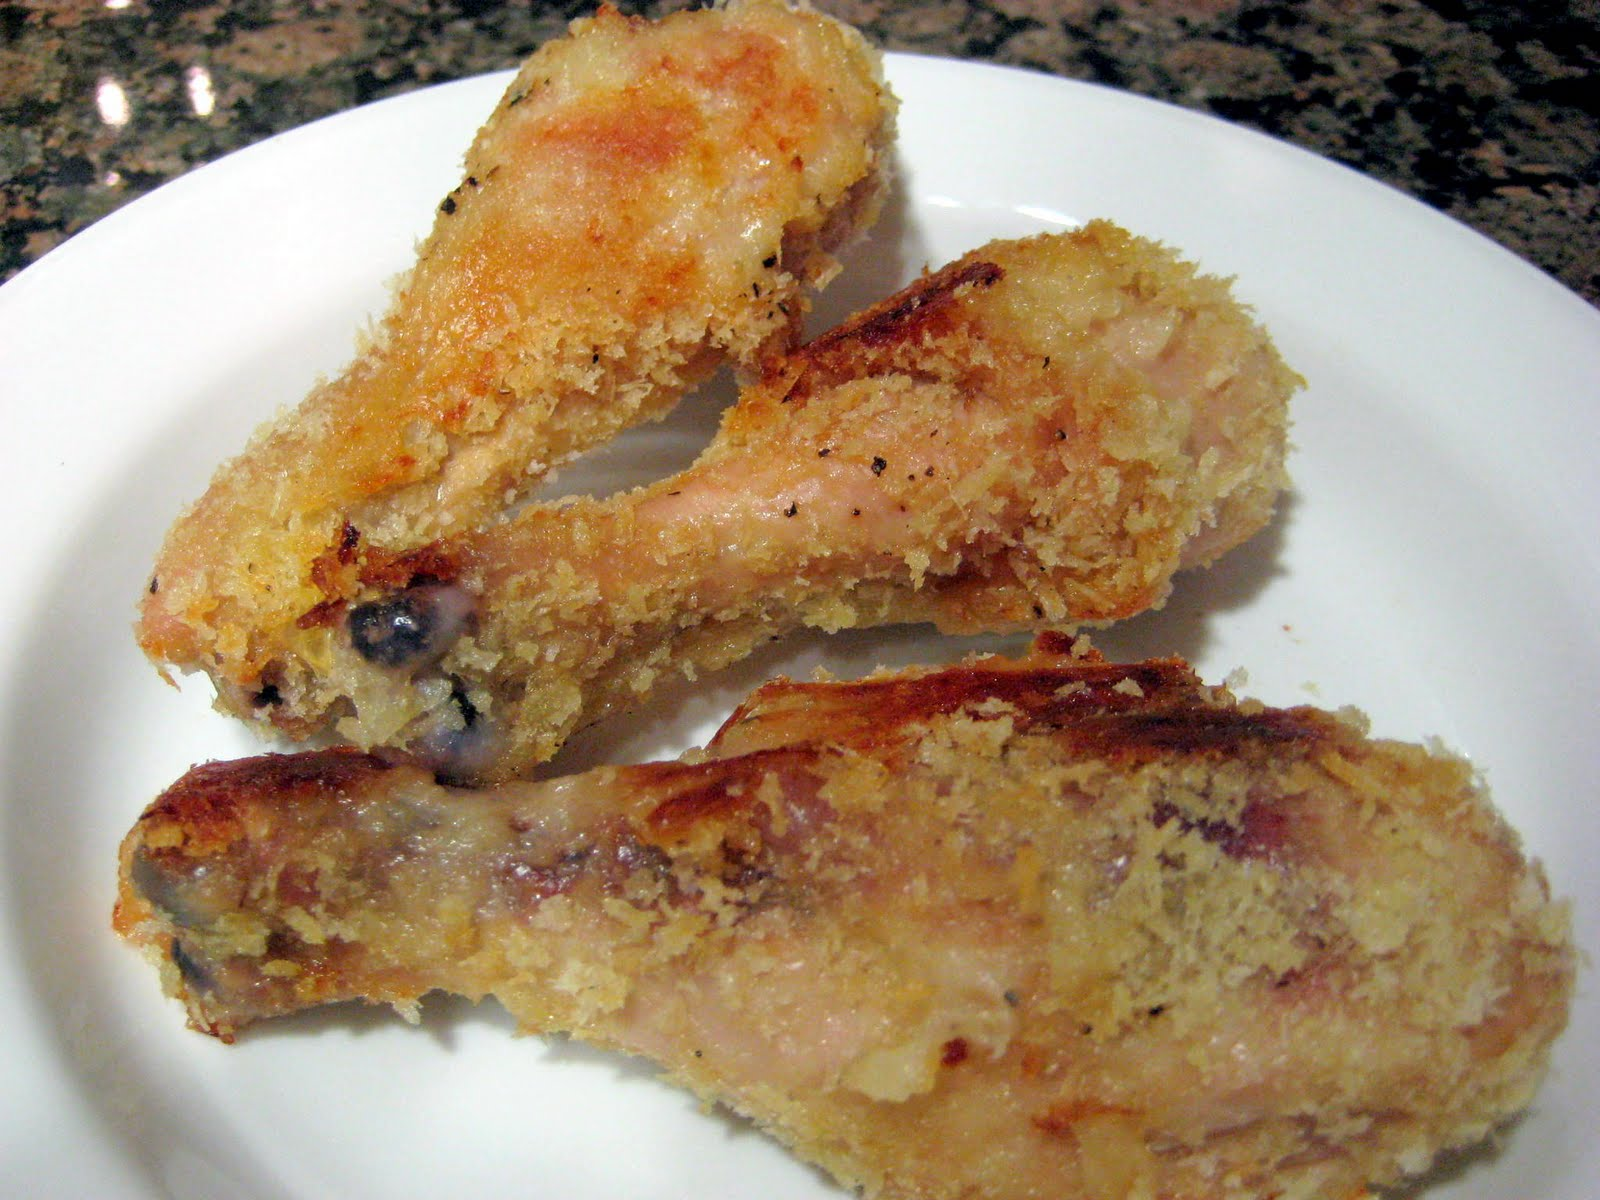 Strawberry and Lemons: Oven Fried Chicken